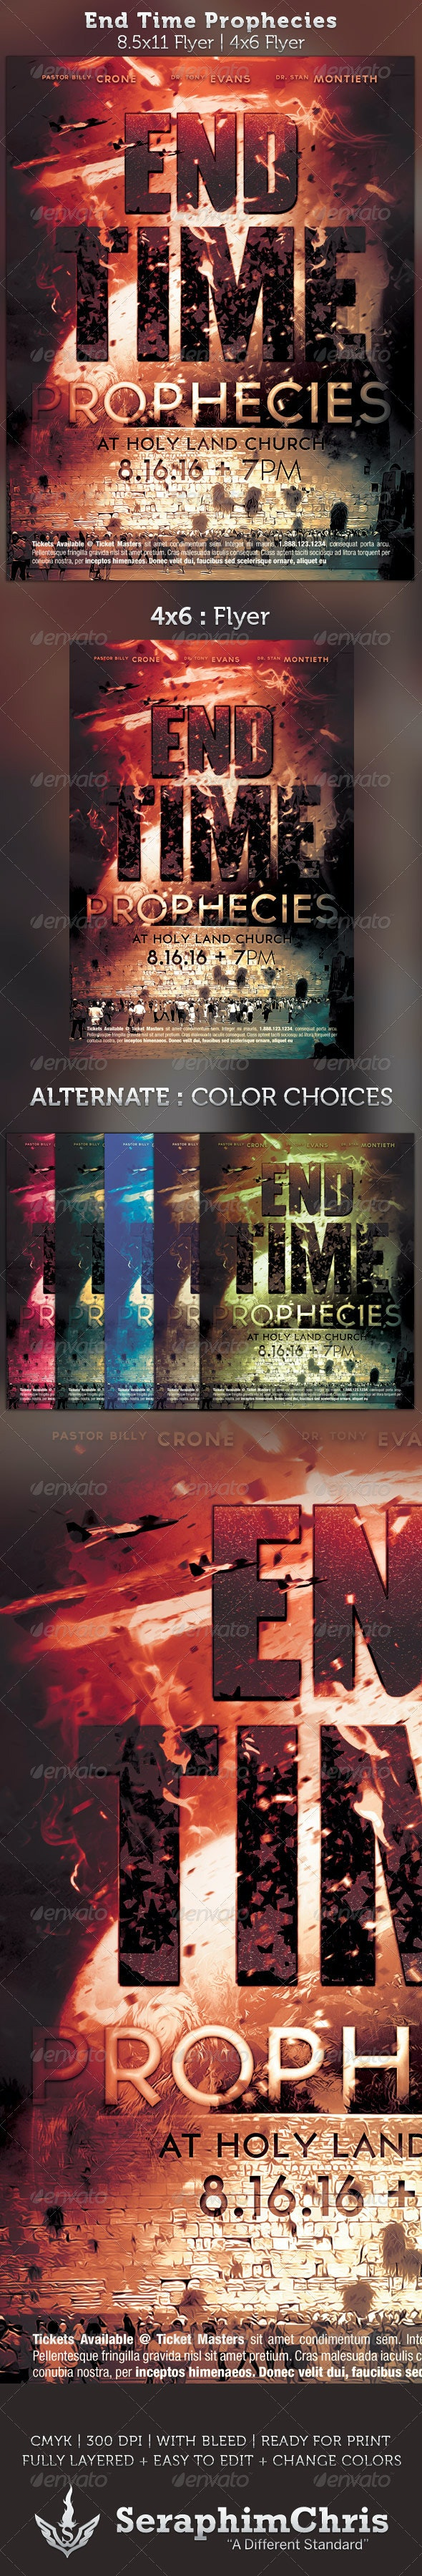 End Time Prophecies Flyer Template - Church Flyers